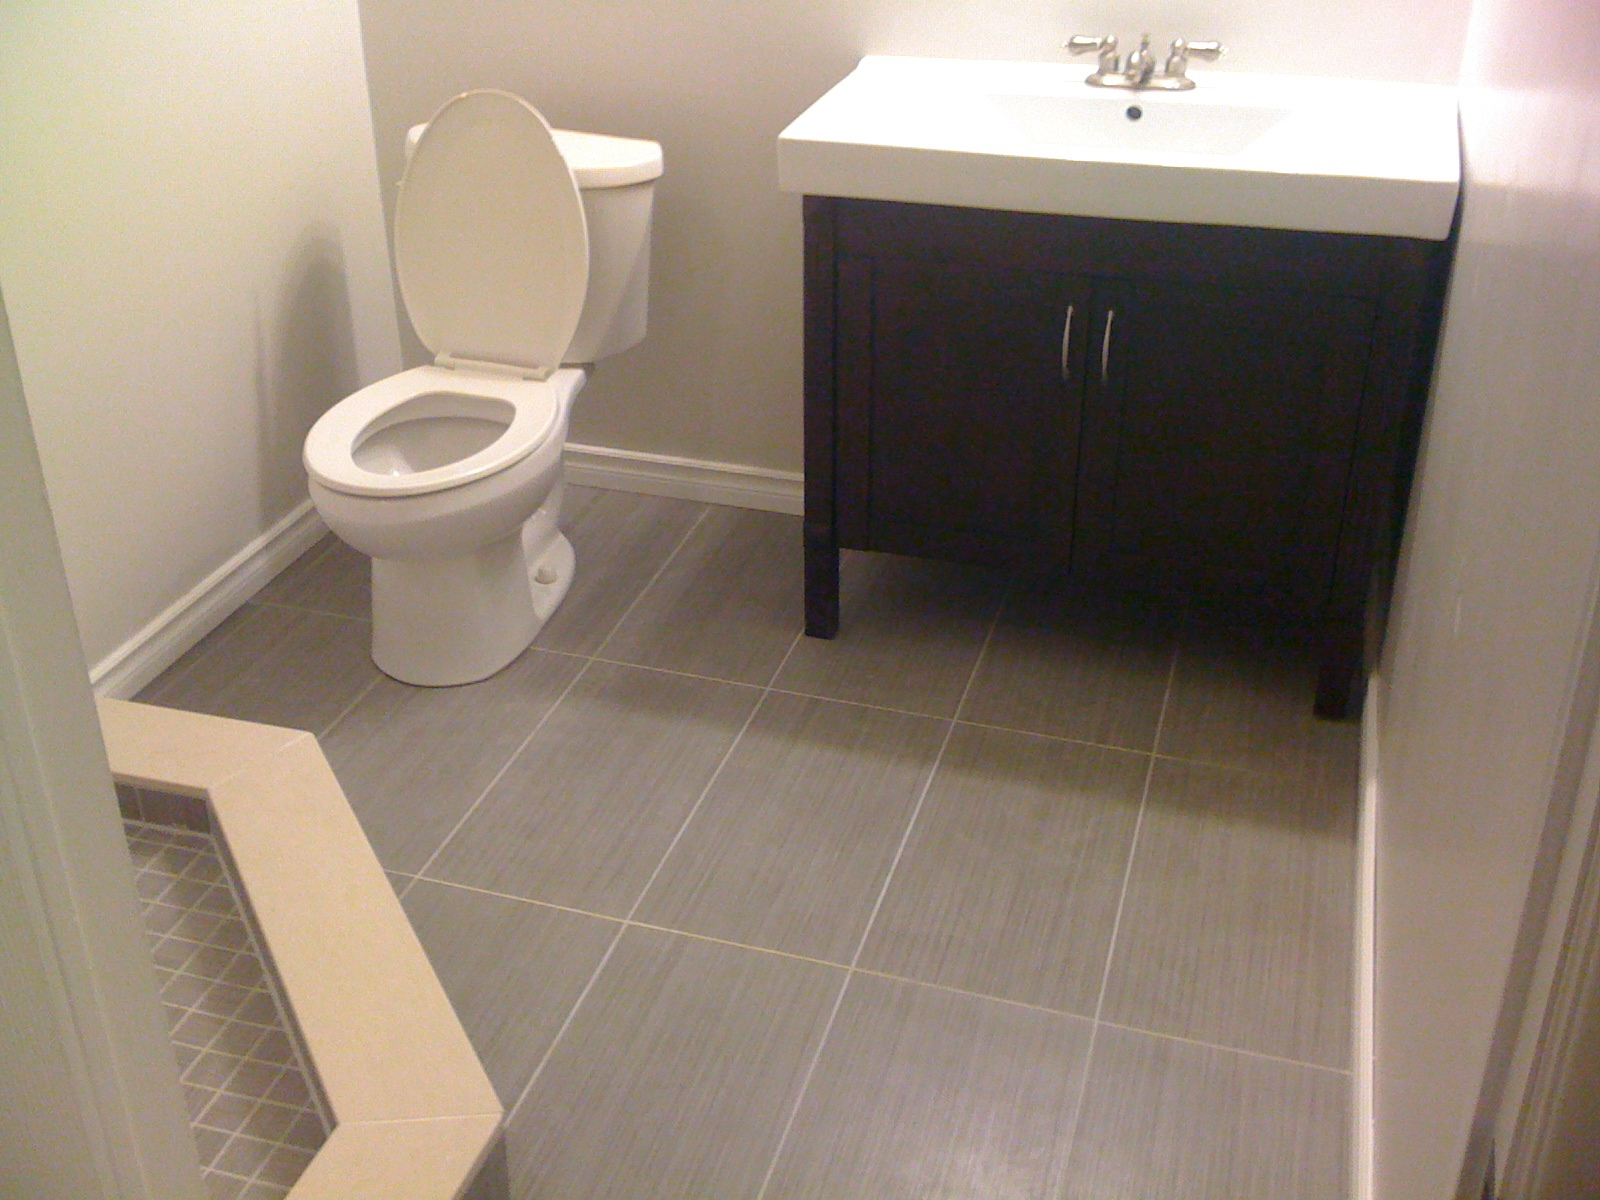 Bathroom floor in porcelain